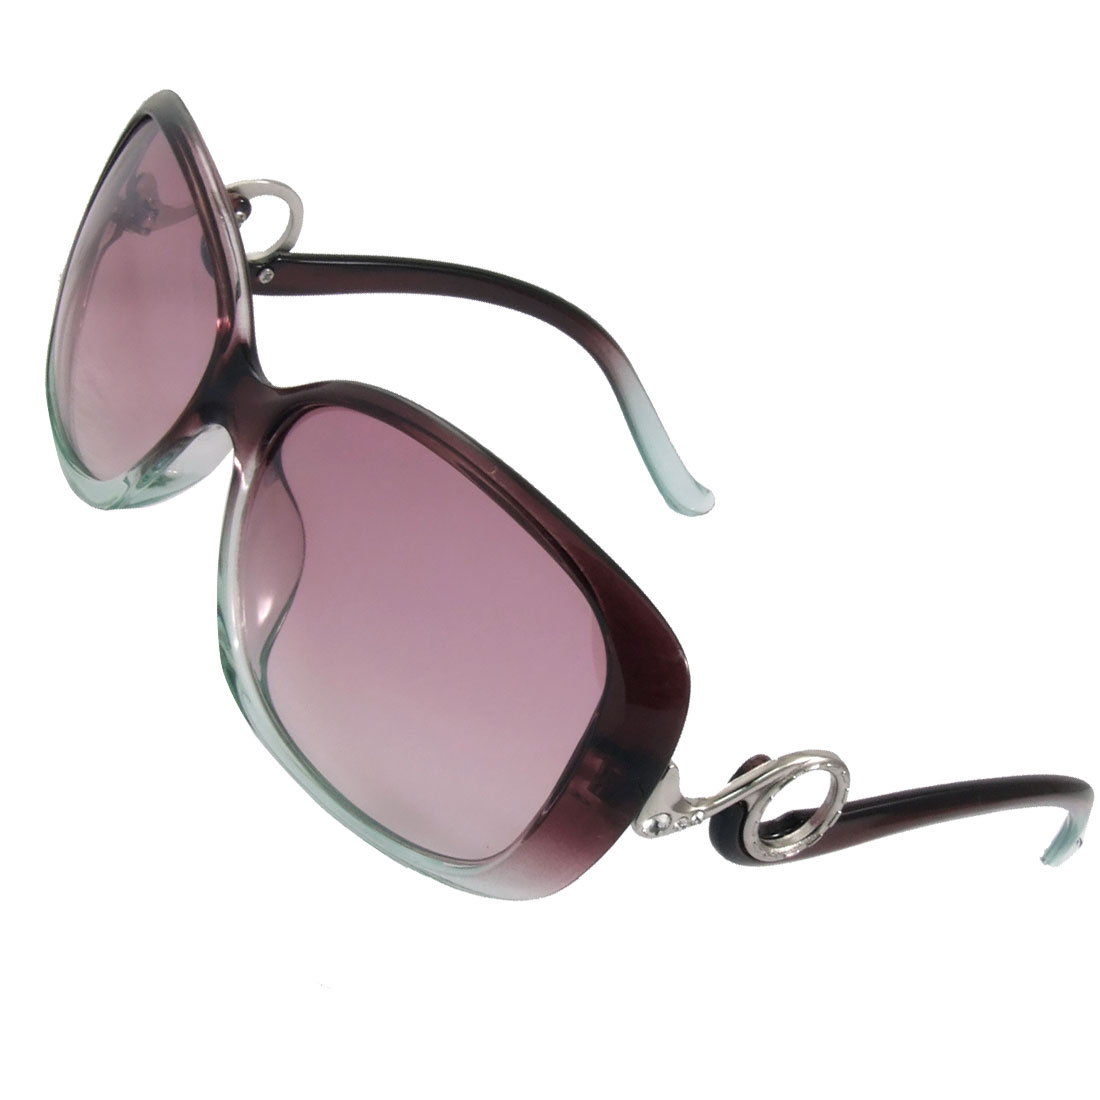 Rhinestone Inlaid Full Frame Plastic Arms Sunglasses for Women